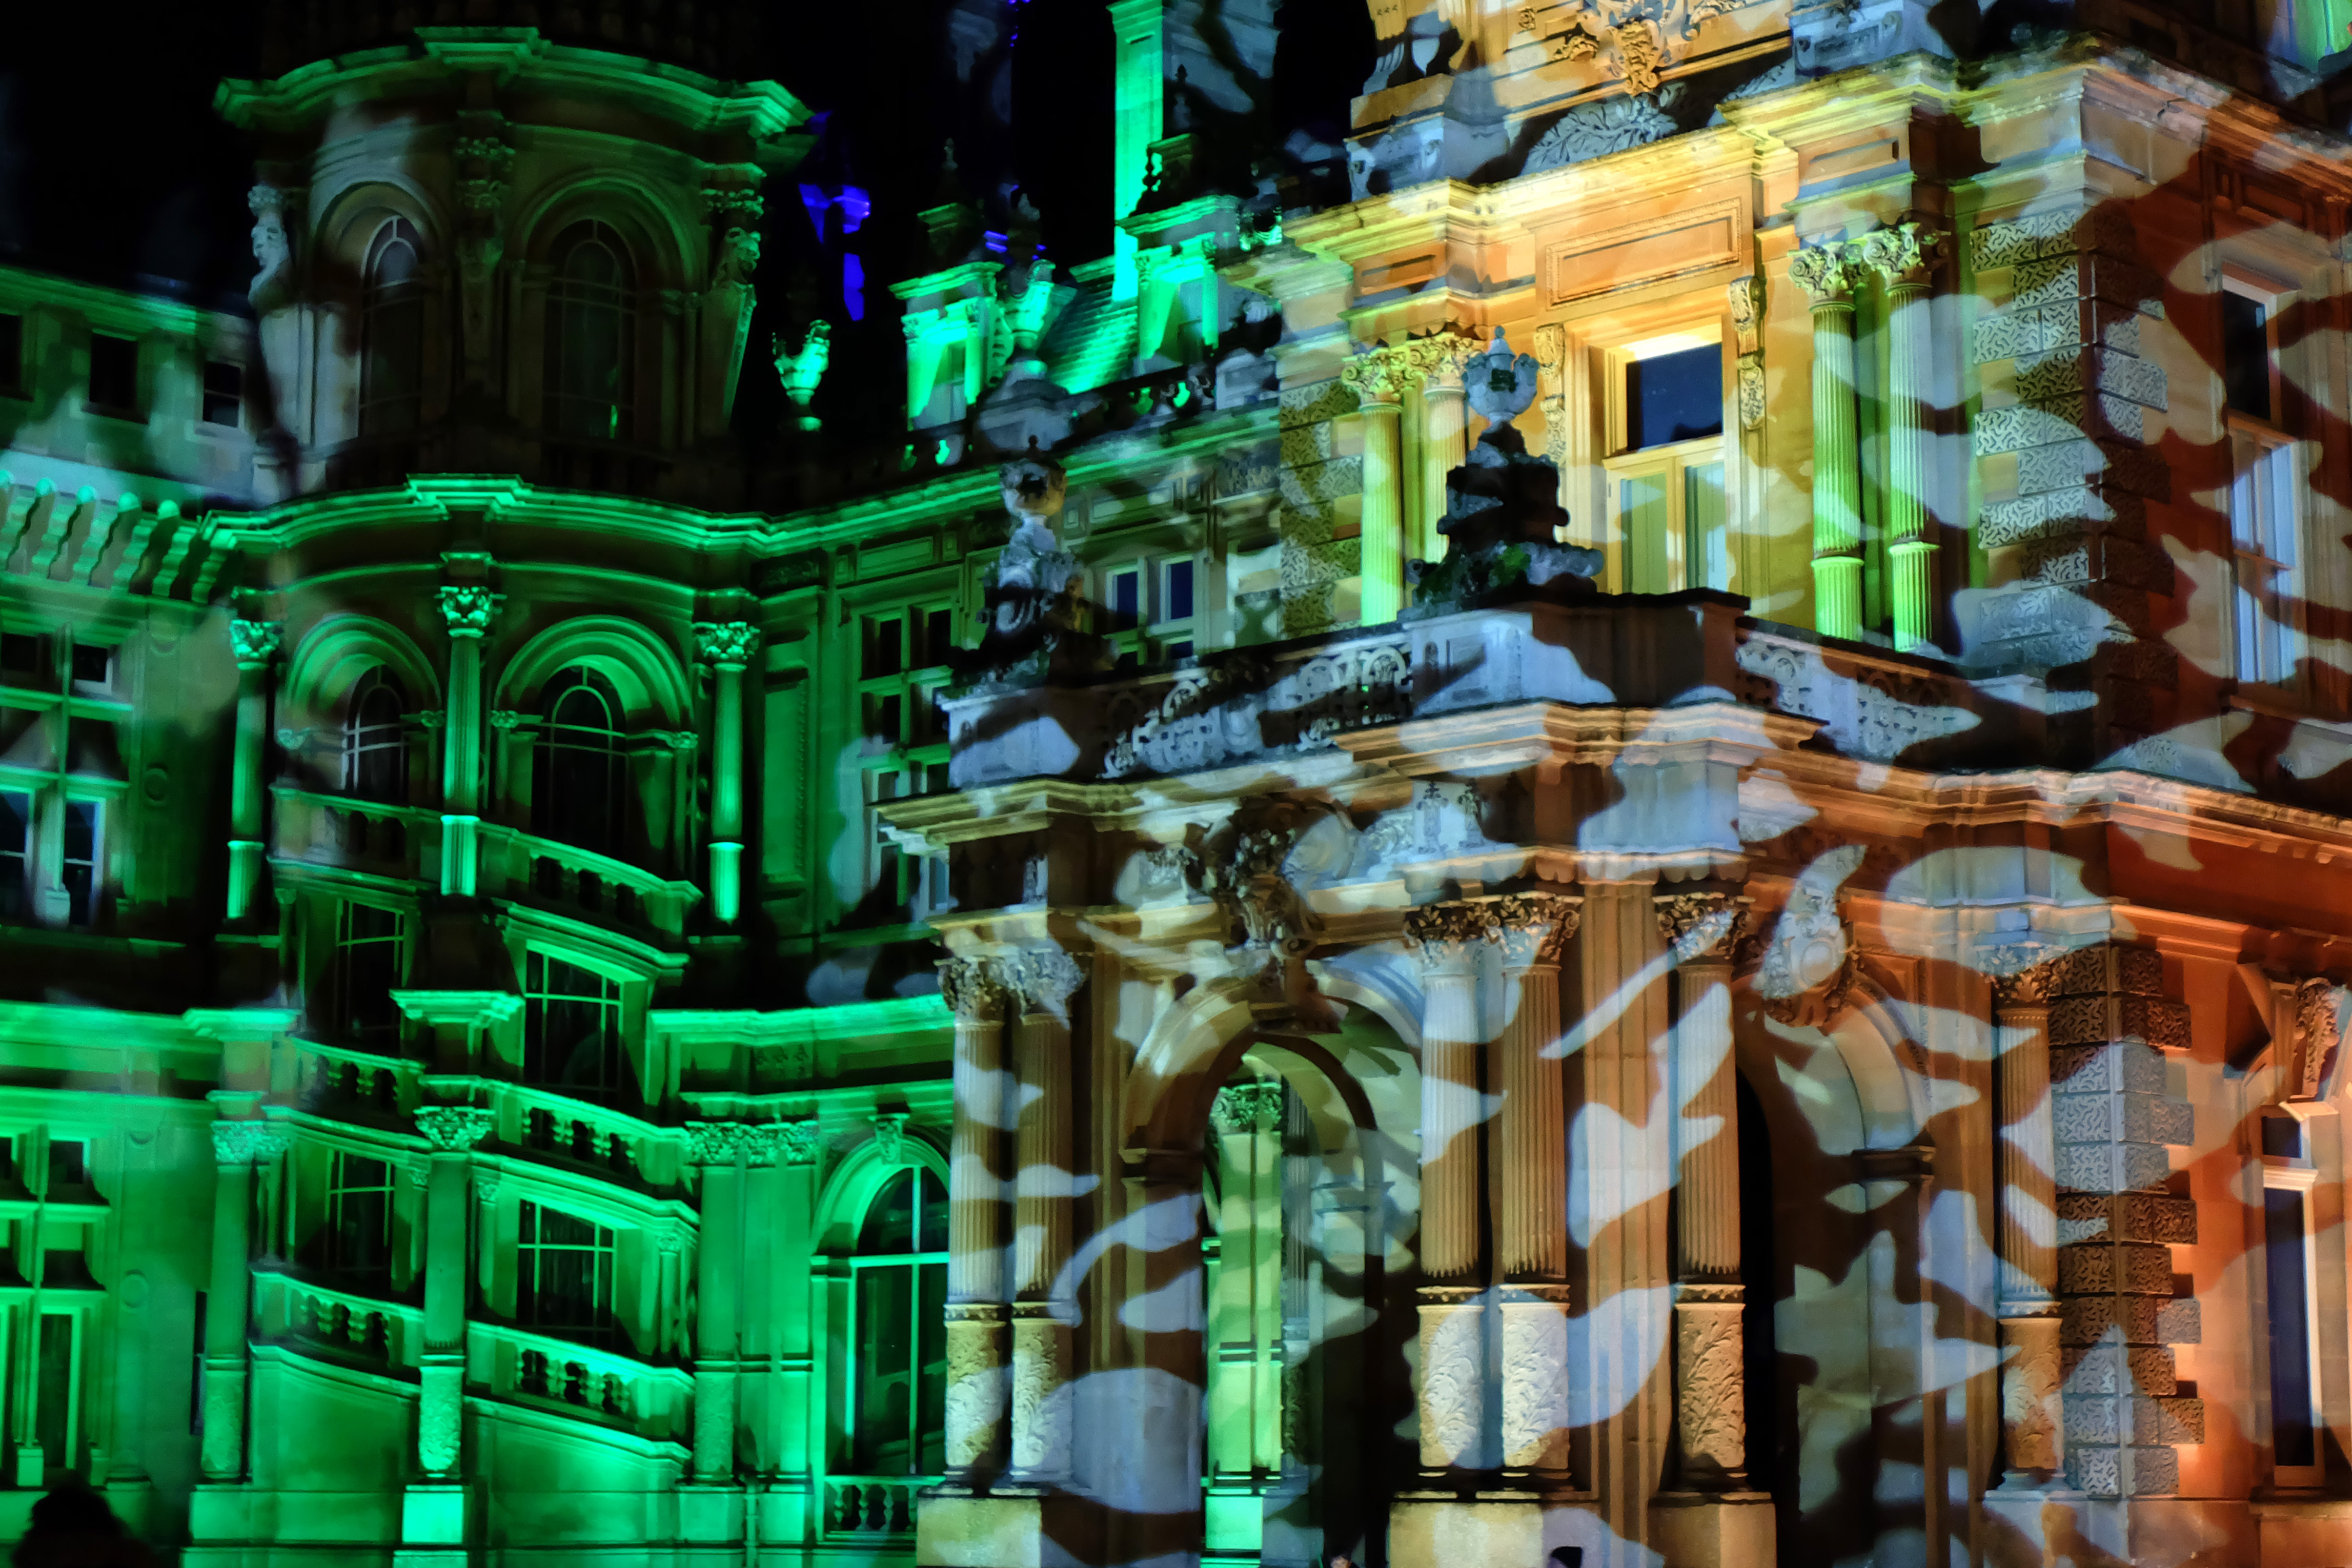 AYLESBURY, ENGLAND - DECEMBER 04:  Light installations entertain visitors during 'Christmas at Waddesdon' at Waddesdon Manor in Buckinghamshire, on December 04, 2020 in Aylesbury, England. (Photo by Jim Dyson/Getty Images)